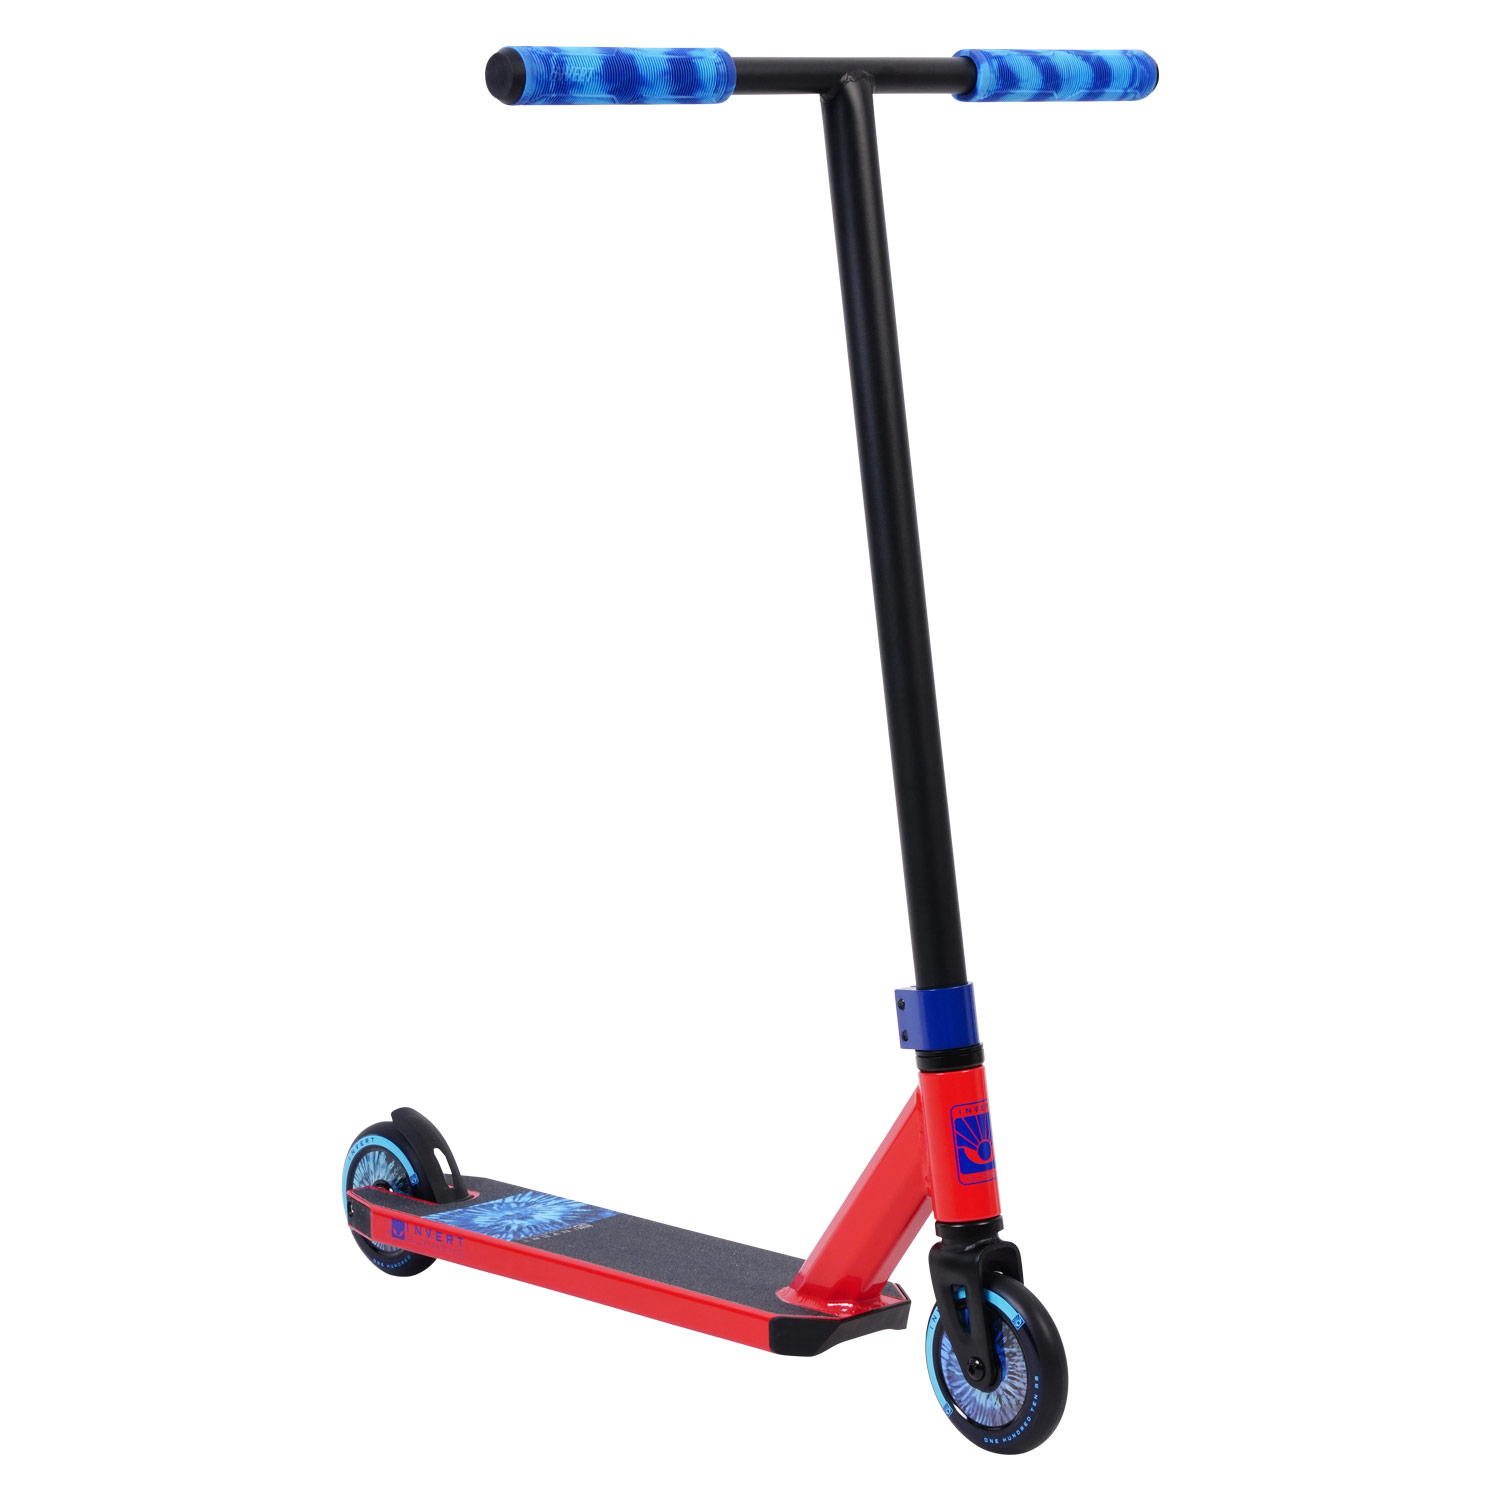 Invert Supreme 1-7-12 Scooter - Red/Black/Blue